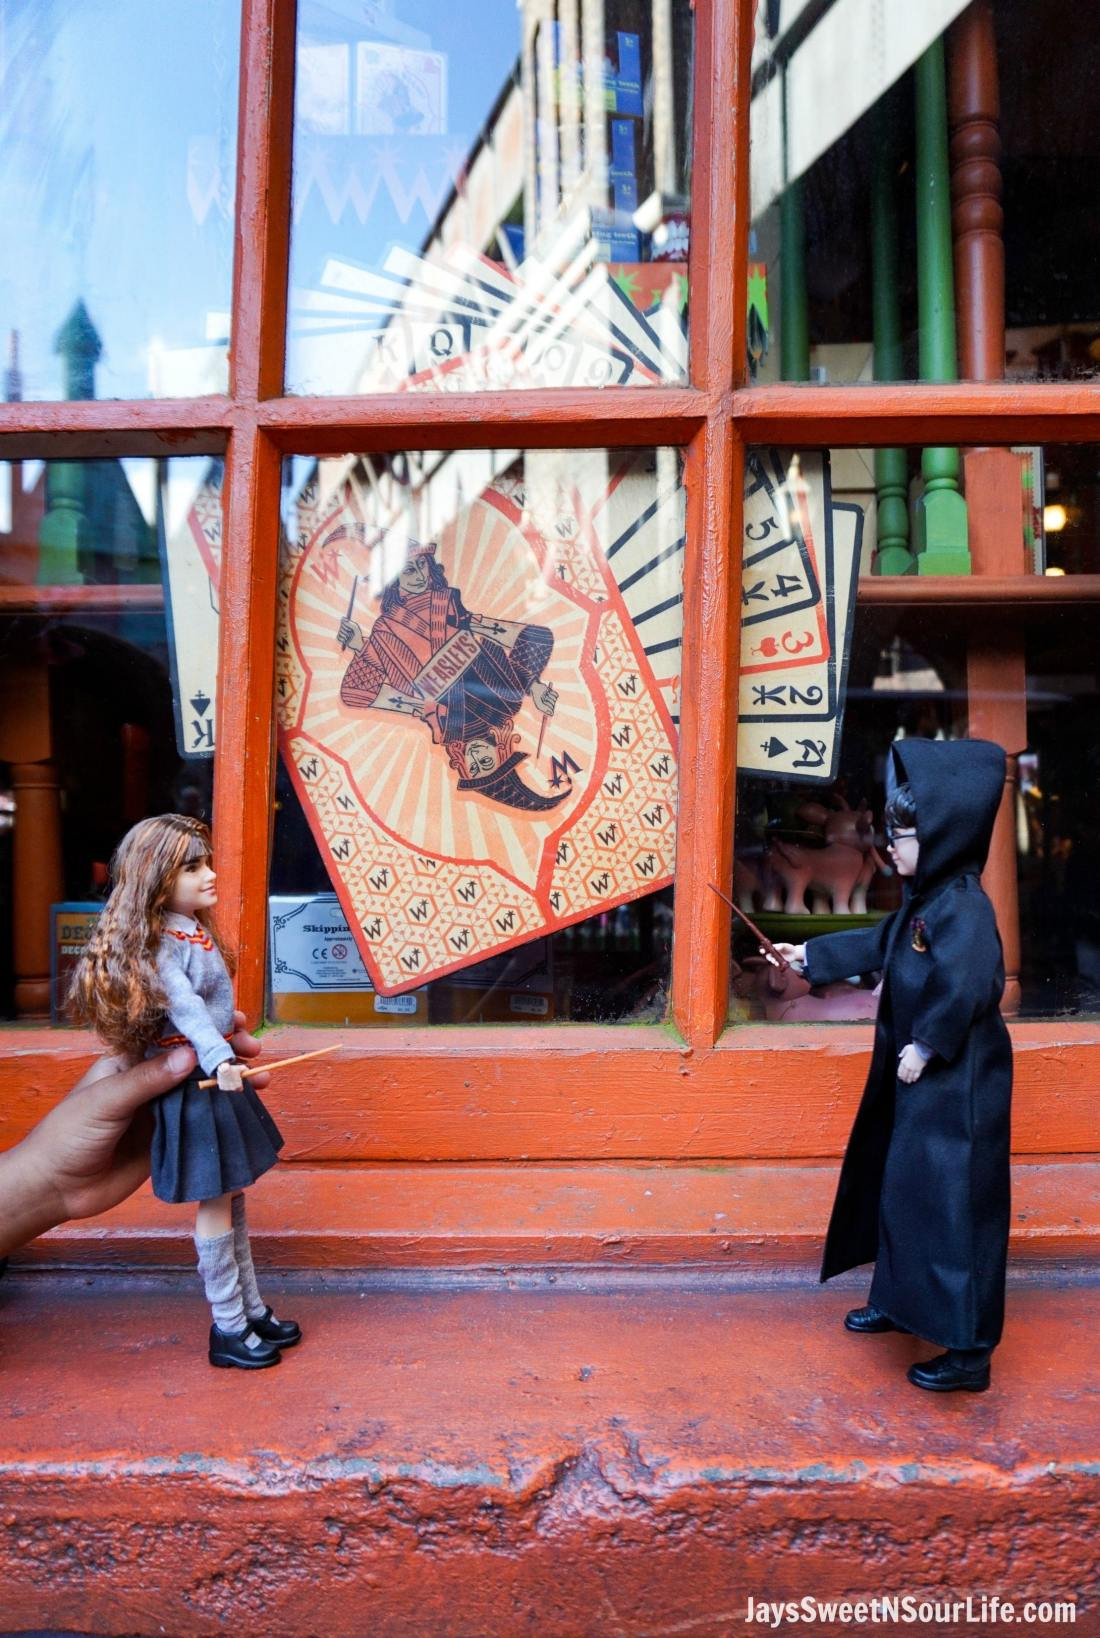 Harry Potter Dolls Window Practicing magical spells. Learn more aboutthese collectable Harry Potter Dolls at Jayssweetnsourlife.com .